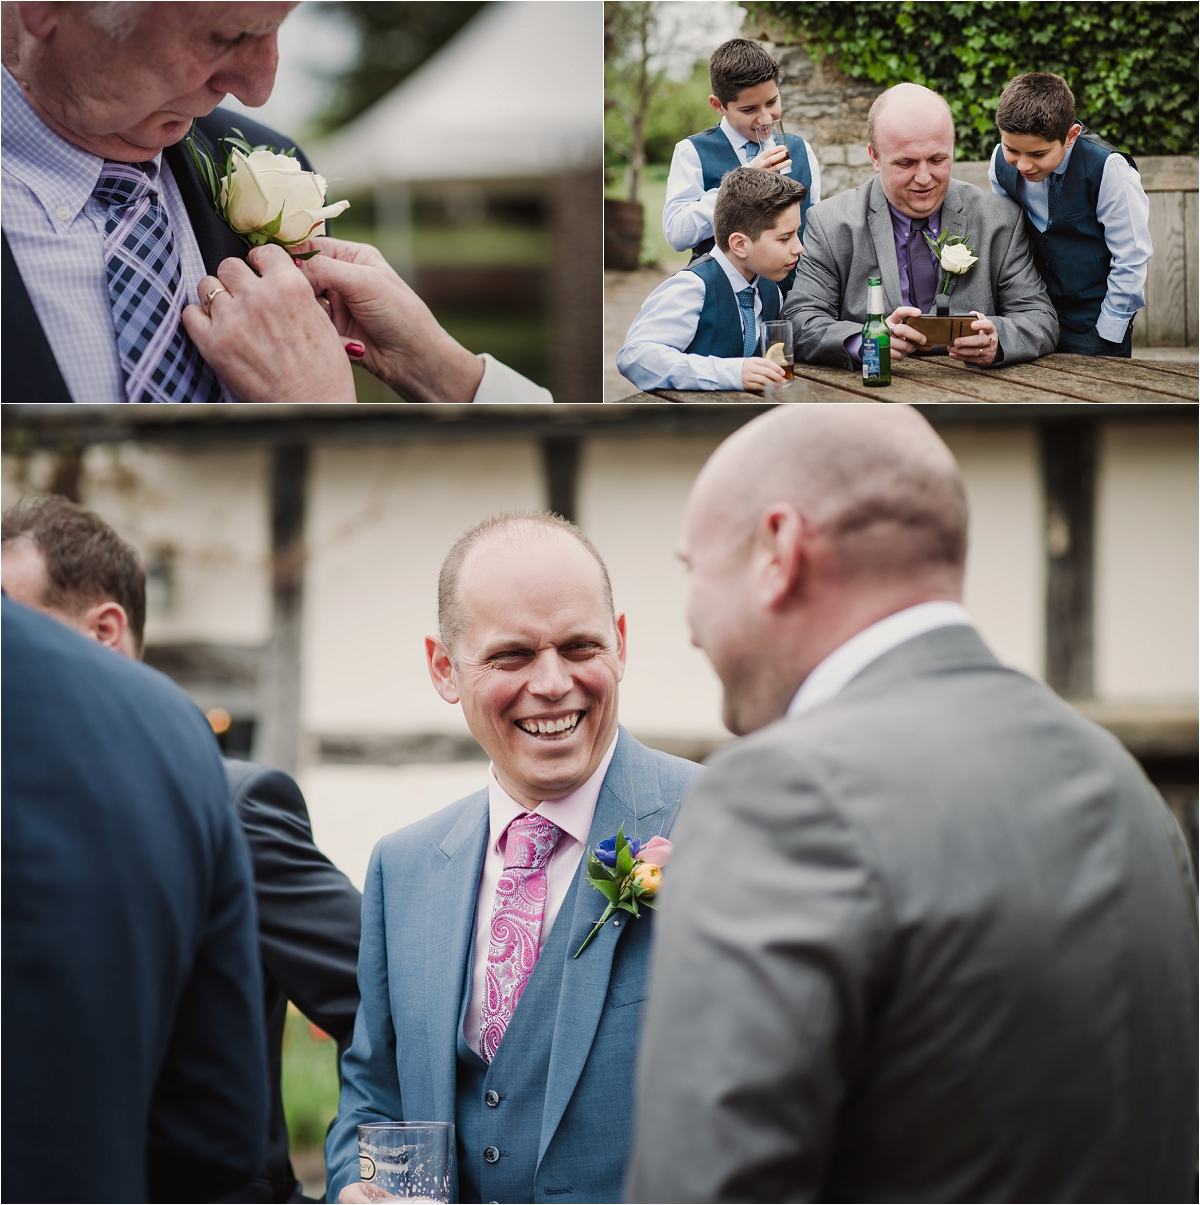 chris_emma_wedding_the_Fleece_inn_0020.jpg